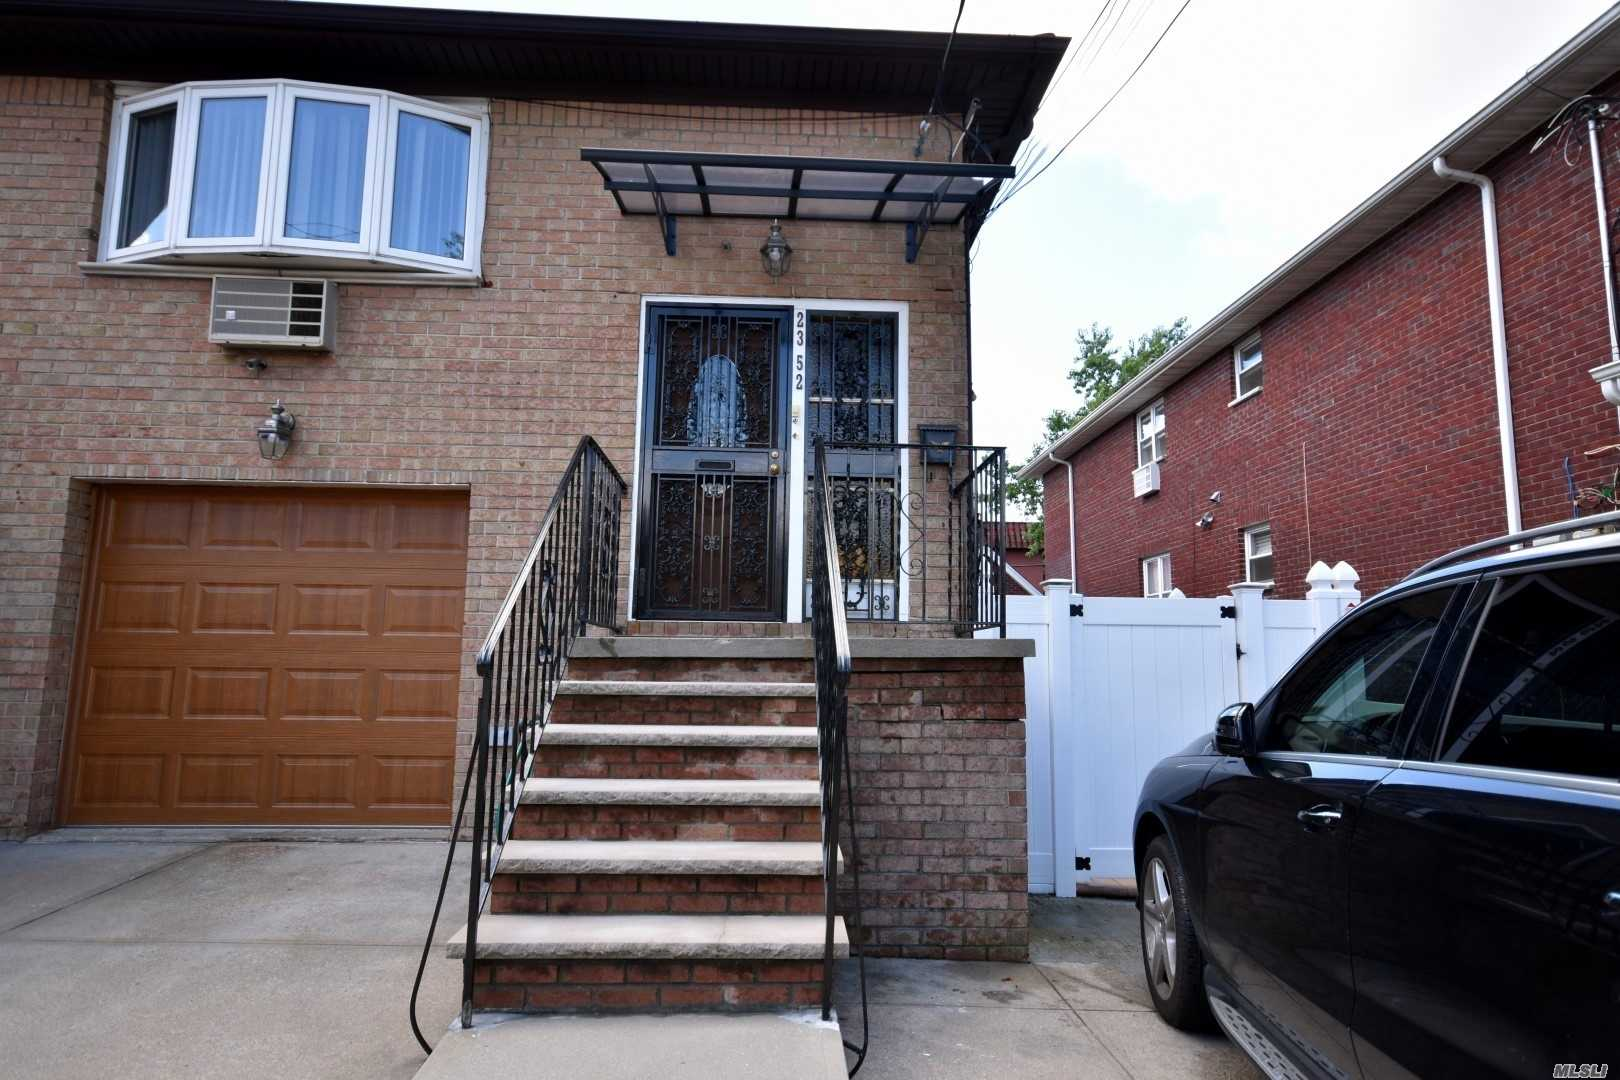 Renovated 2 Bedroom Apartment With Brand New Kitchen, Updated Bathroom, Hardwood Floors, Private Entrance. Rent Includes All Utilities. Extra $100/Month From June-August For A/C Usage. Non-Smoker, No Pets. Great Location Near Laguardia Airport And Major Highways. Local Buses Just Blocks Away.